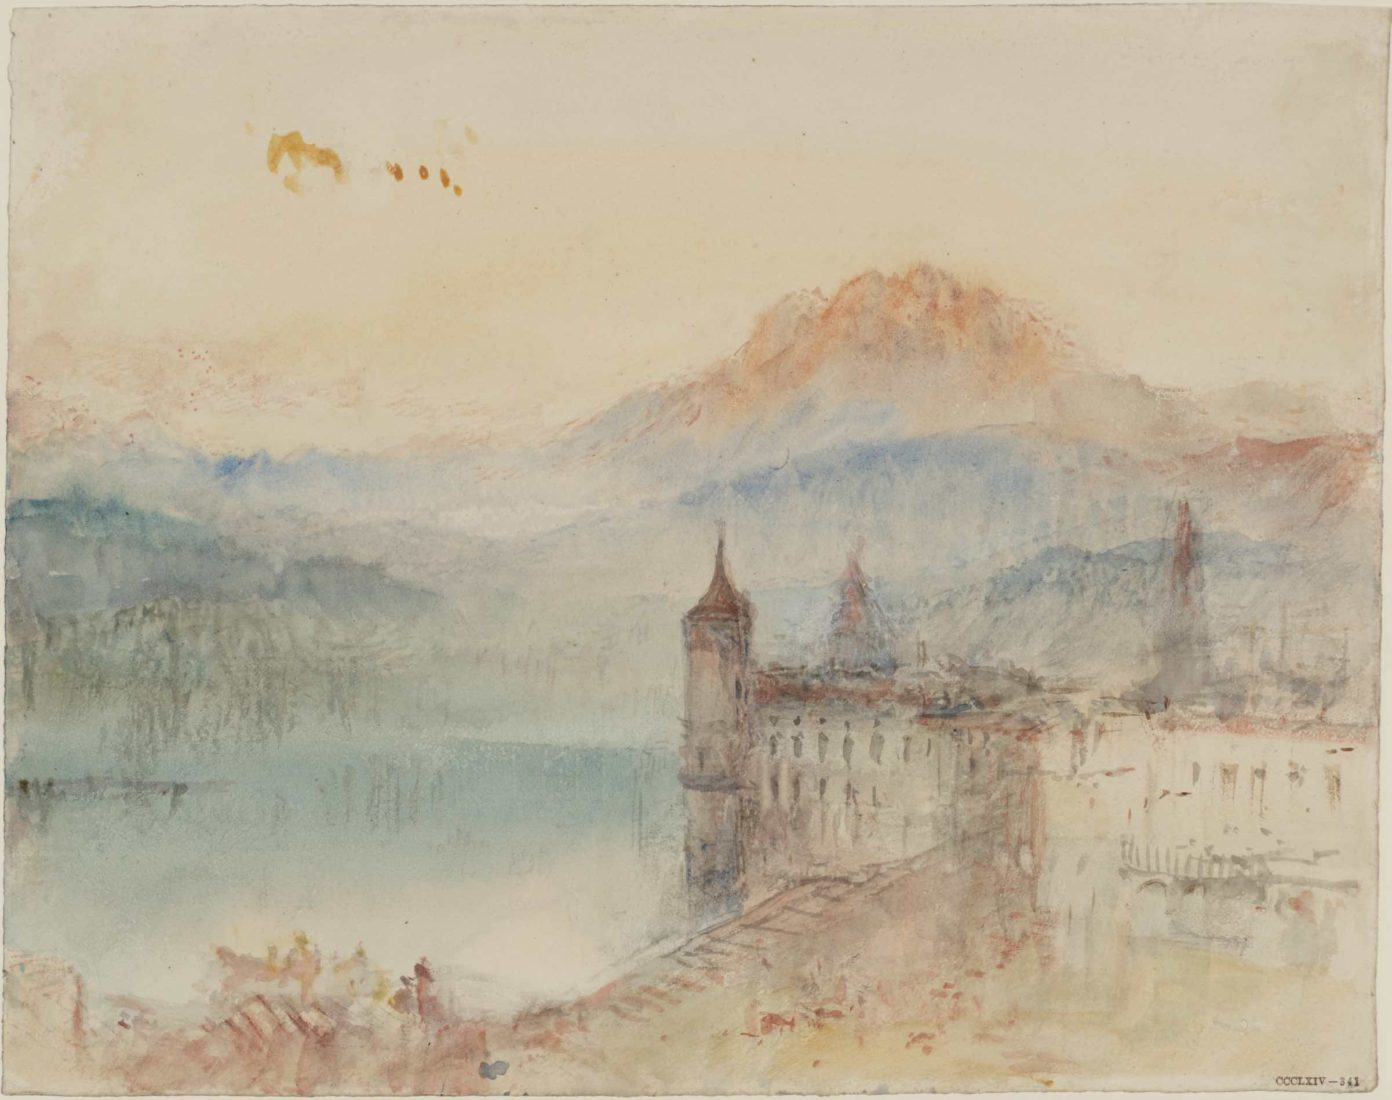 William Turner, Lucerne with Pilatus beyond